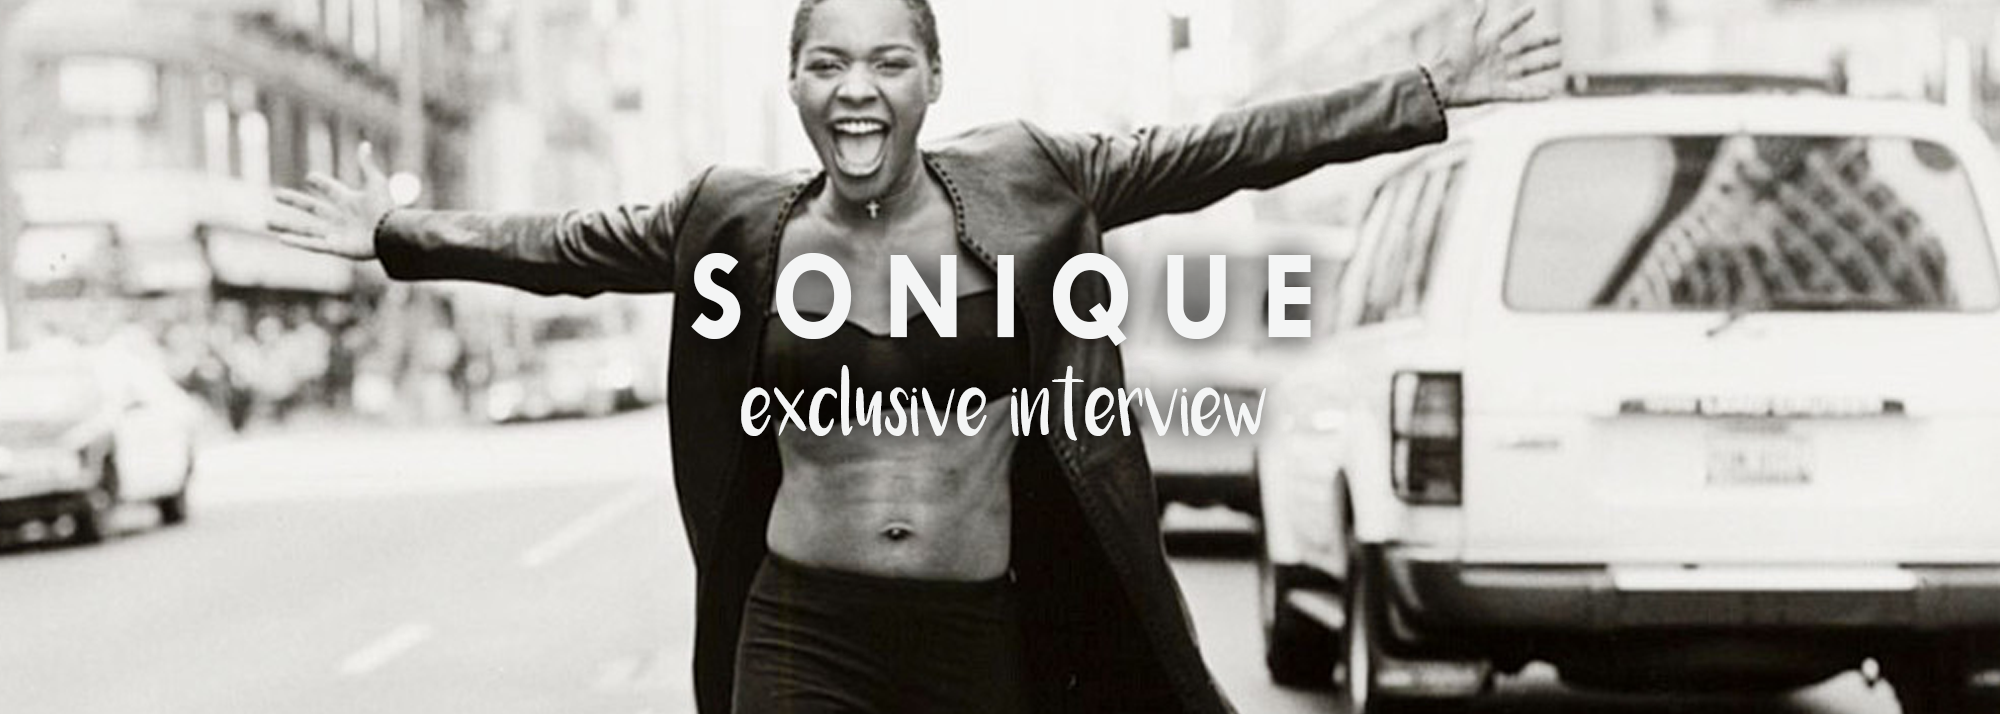 A Sonique Interview Exclusive.